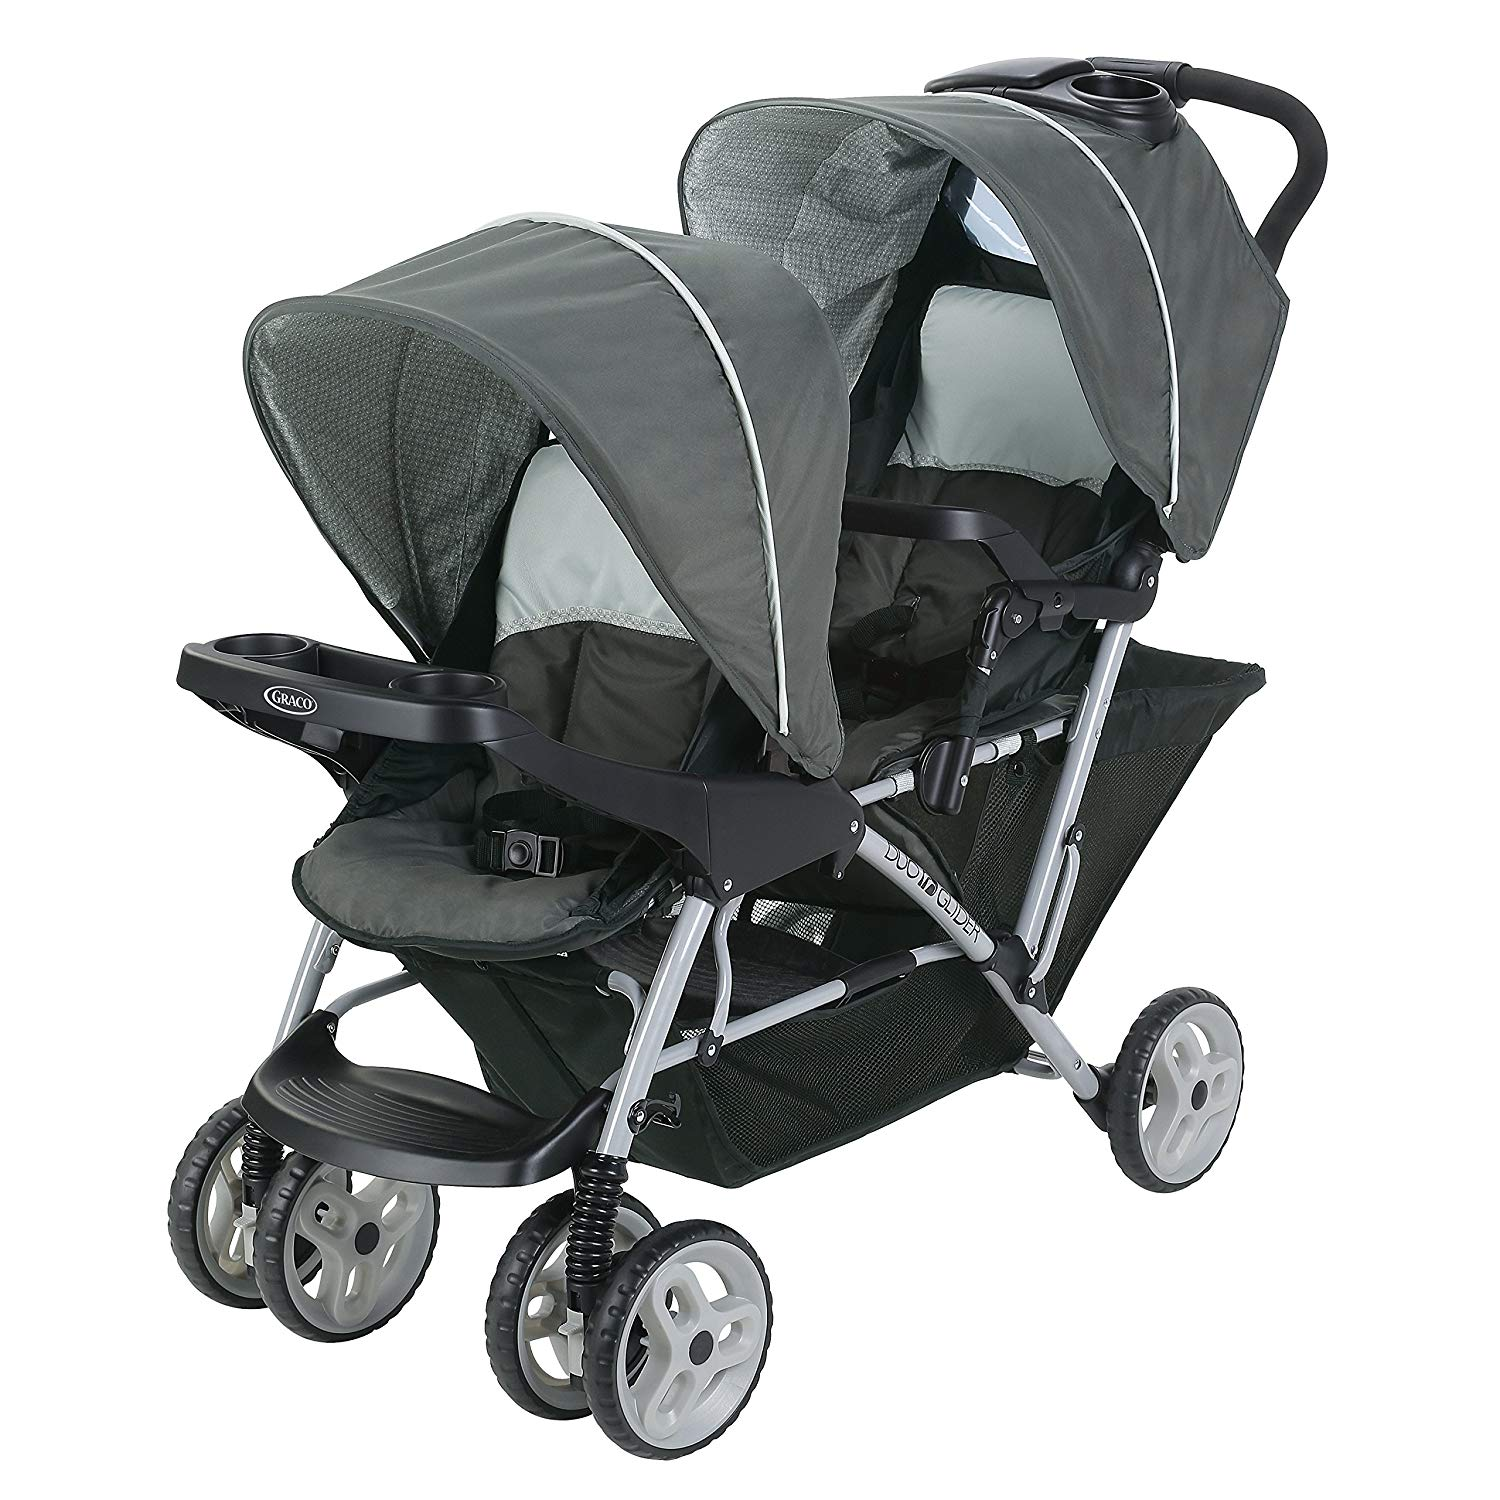 Review of Graco DuoGlider Double Stroller | Lightweight Double Stroller with Tandem Seating